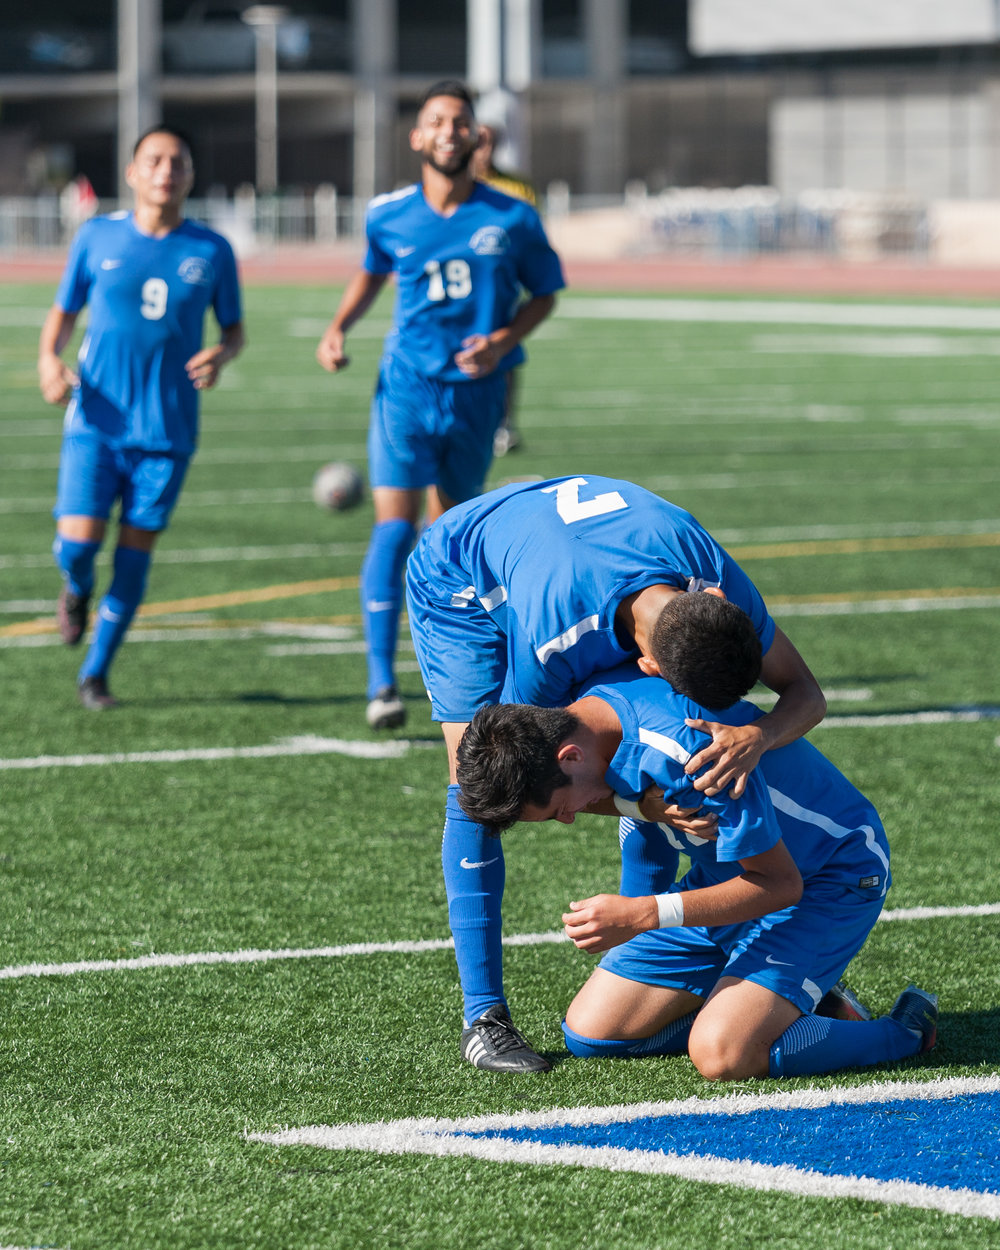 Midfielder Carlos Rincon (16) unleashes his emotions as he is embraced by teammate Kevin Martinez (7) who scored The Corsair's first goal in the a minute prior. Rincon scored the second goal, putting the Corsairs up 2-0 against Victor Valley at the 61st minute mark. The Santa Monica College Corsairs won the game 2-0 against the Victor Valley Rams. The match was held at the Corsair Stadium at Santa Monica College in Santa Monica, Calif. on October 6, 2017.  (Photo by: Justin Han/Corsair Staff)